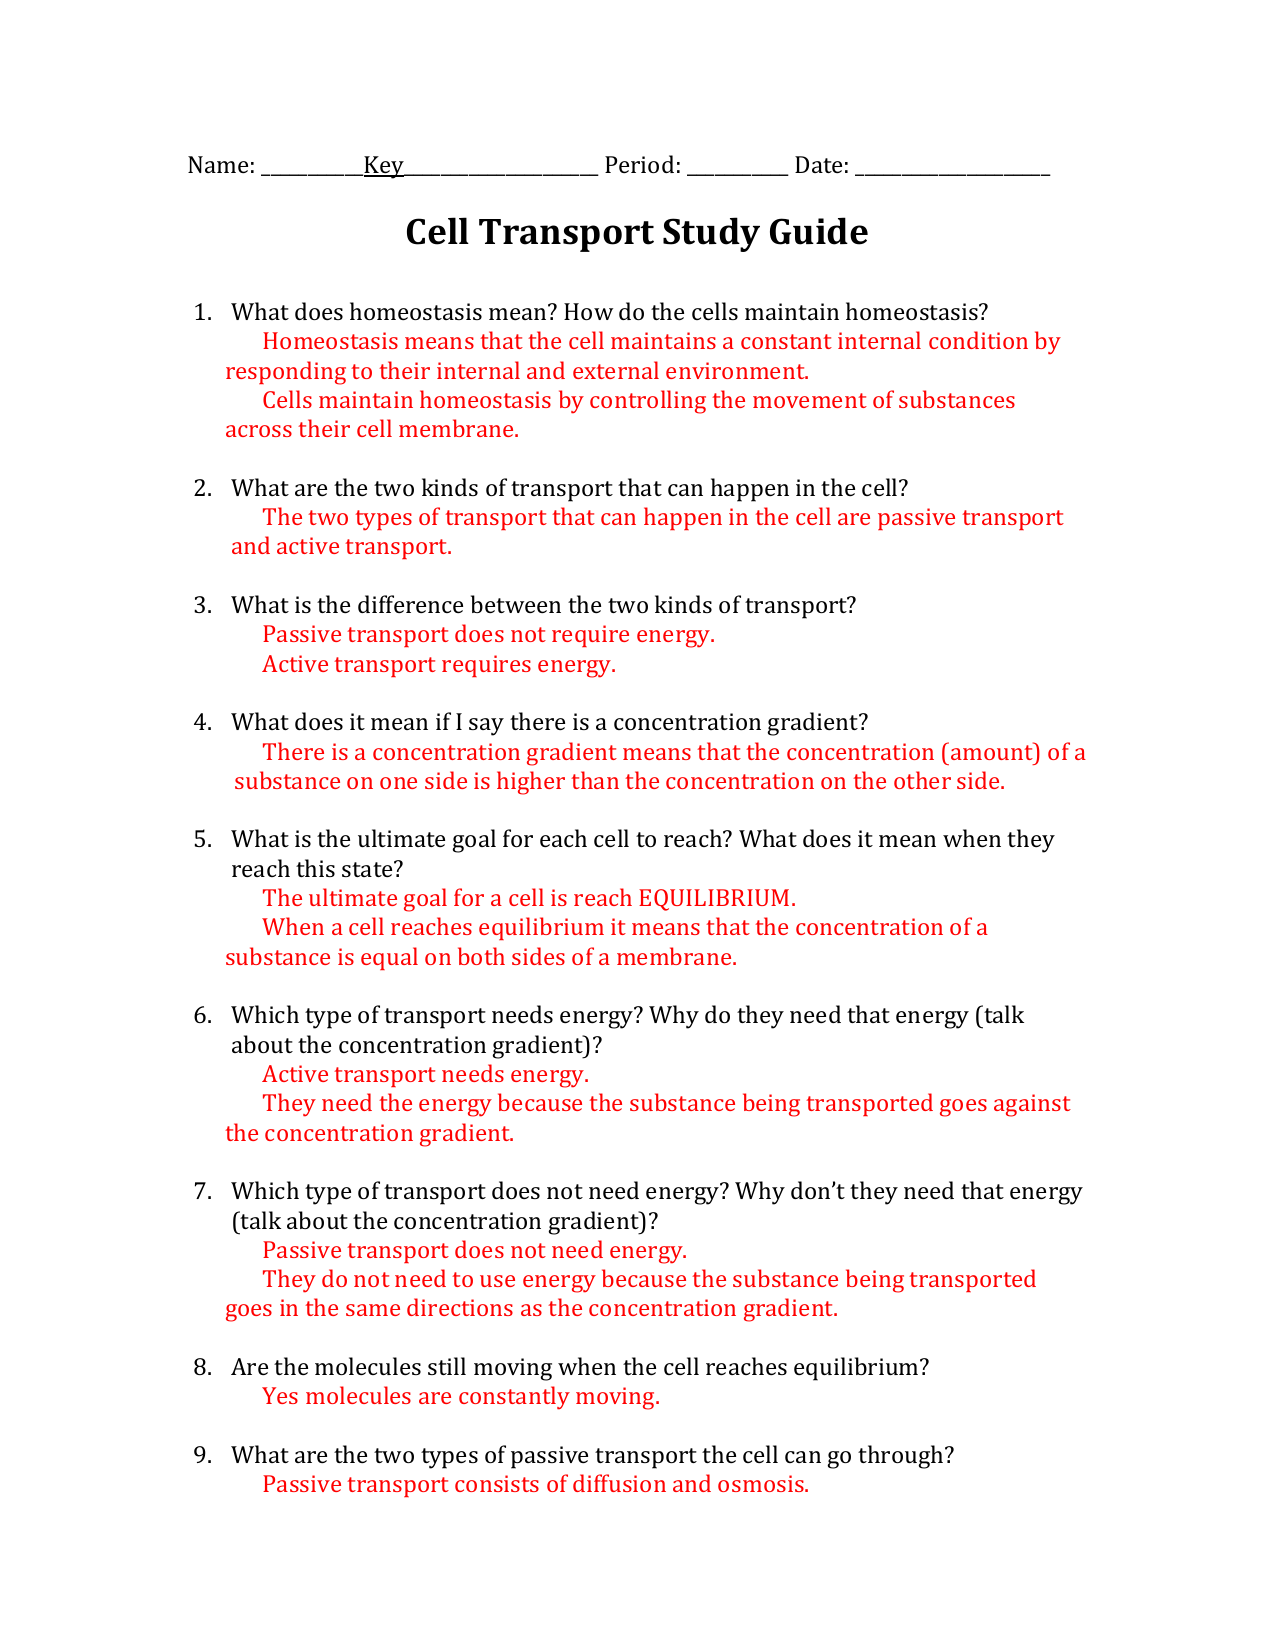 worksheet Homeostasis And Transport Worksheet cell transport study guide answers